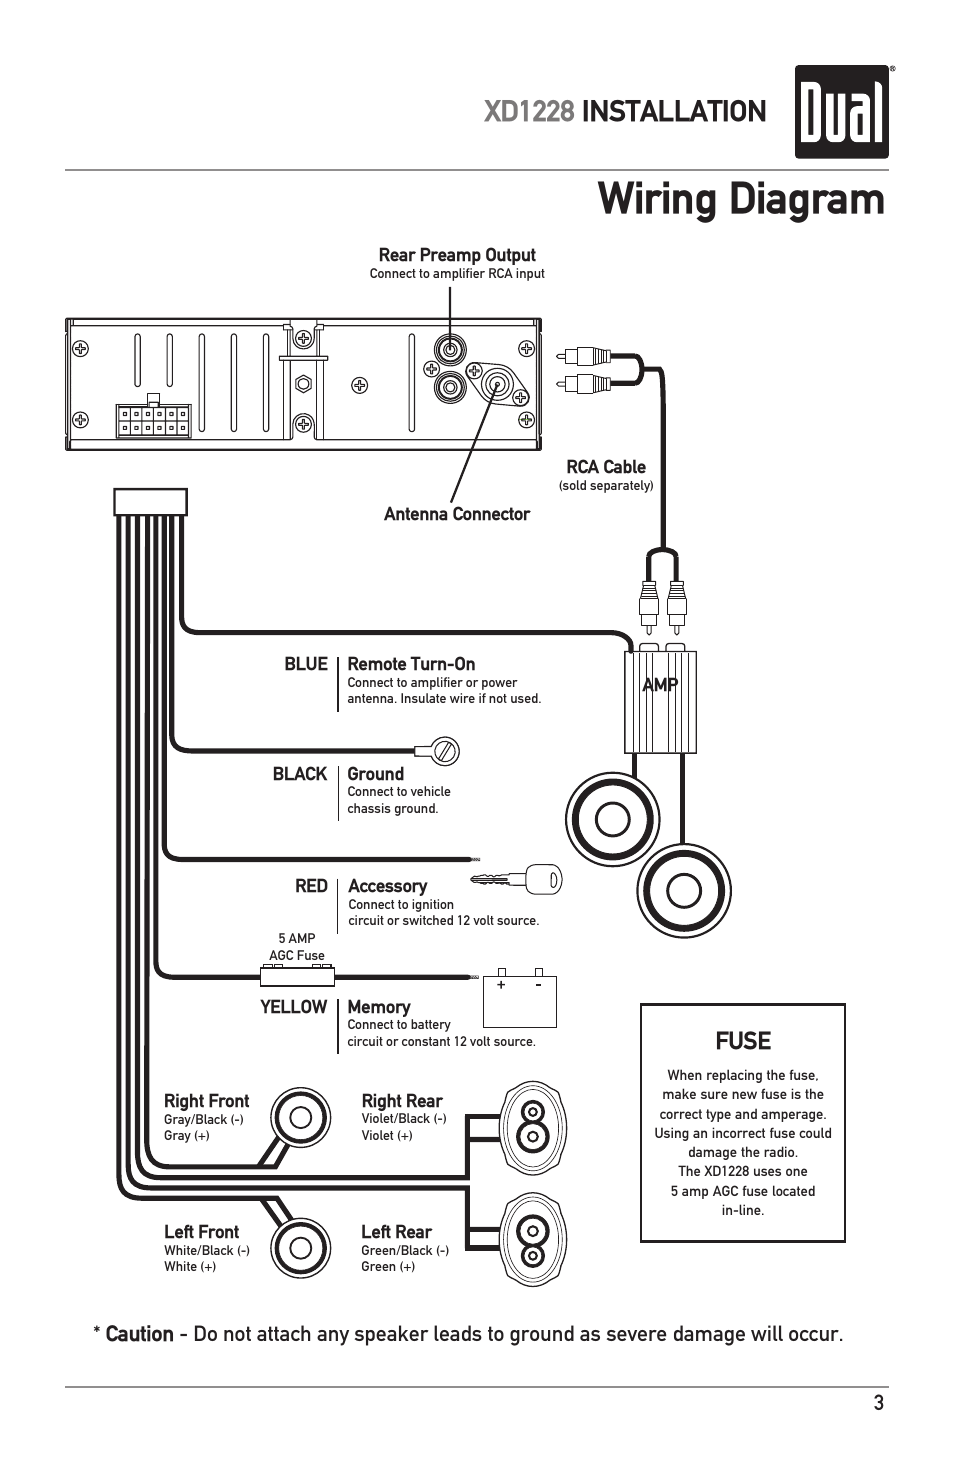 Wiring Diagram With The Dealer Mode Wires Labelled